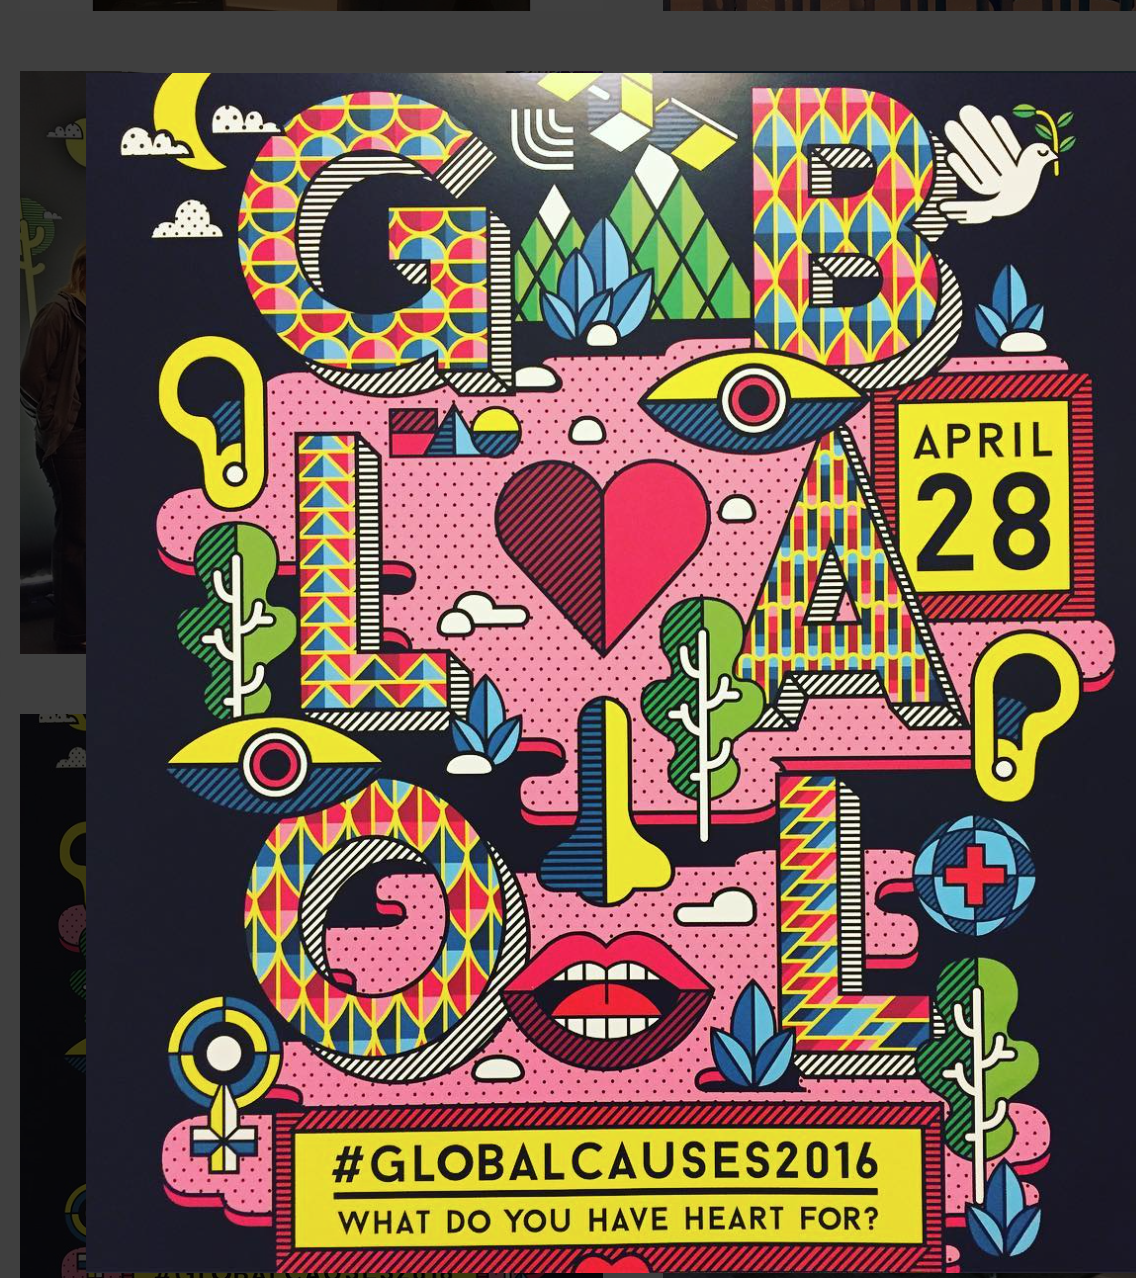 #GlobalCauses2016 event at Facebook